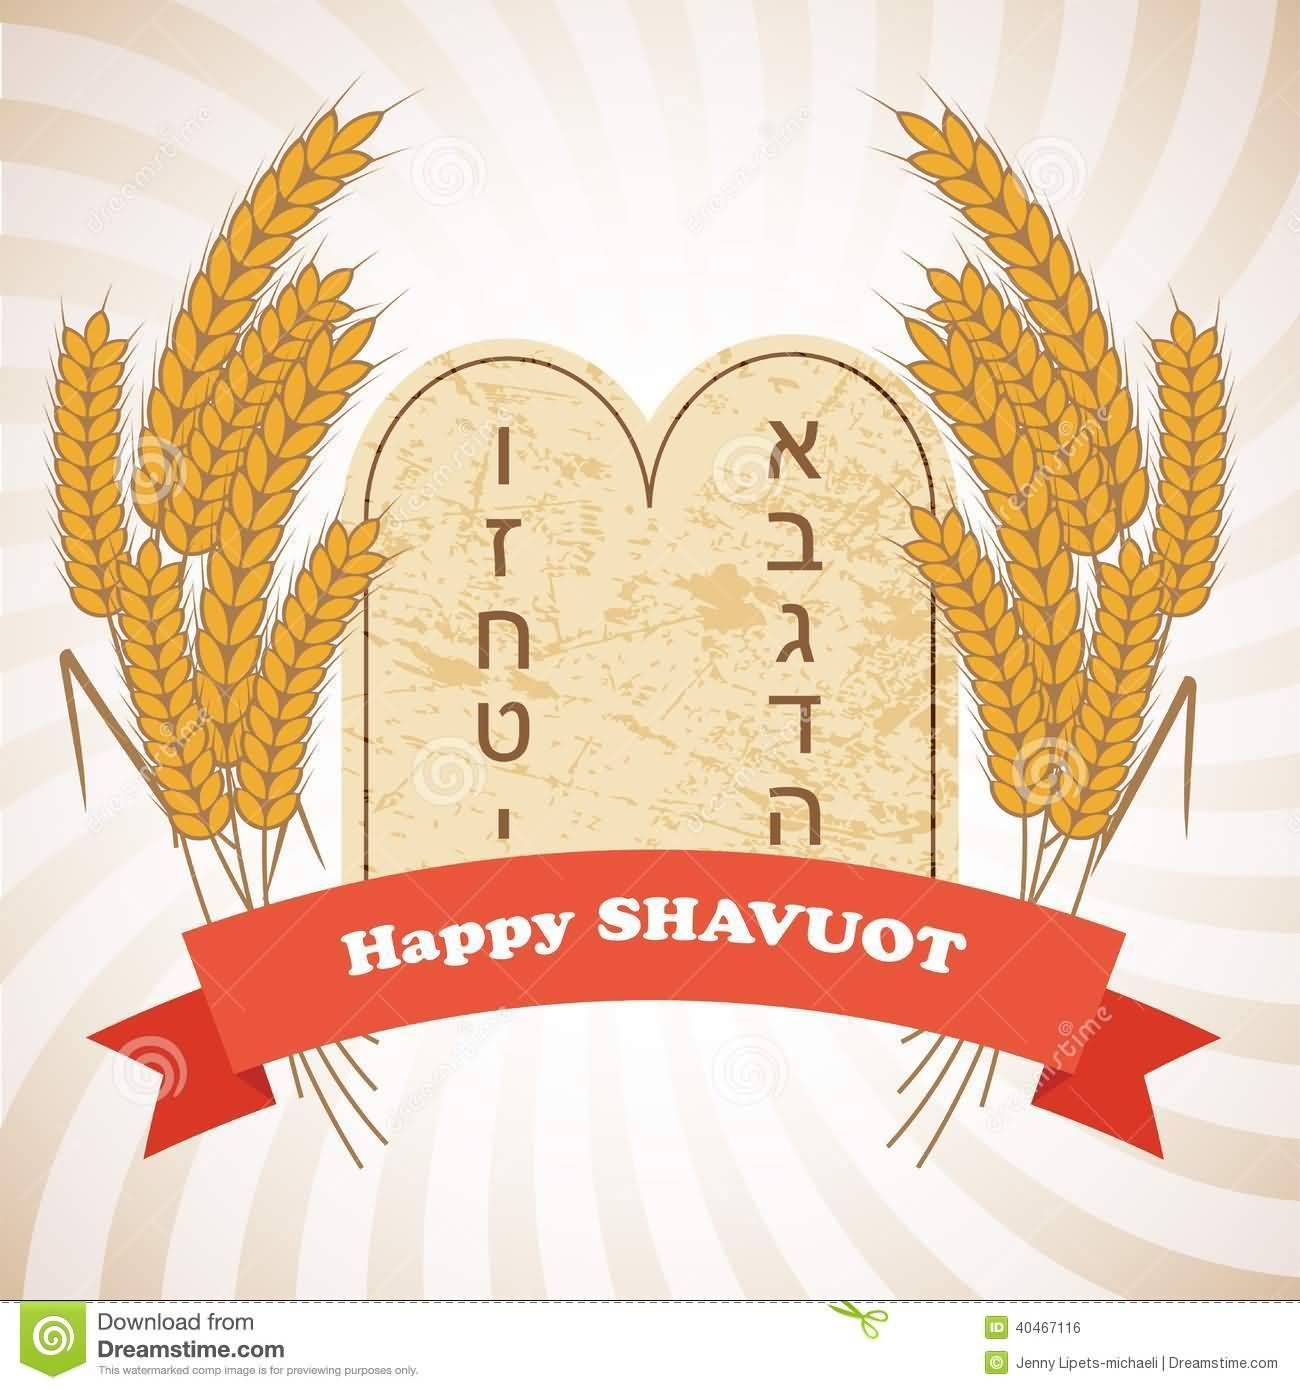 Happy Shavuot 2017 Illustration